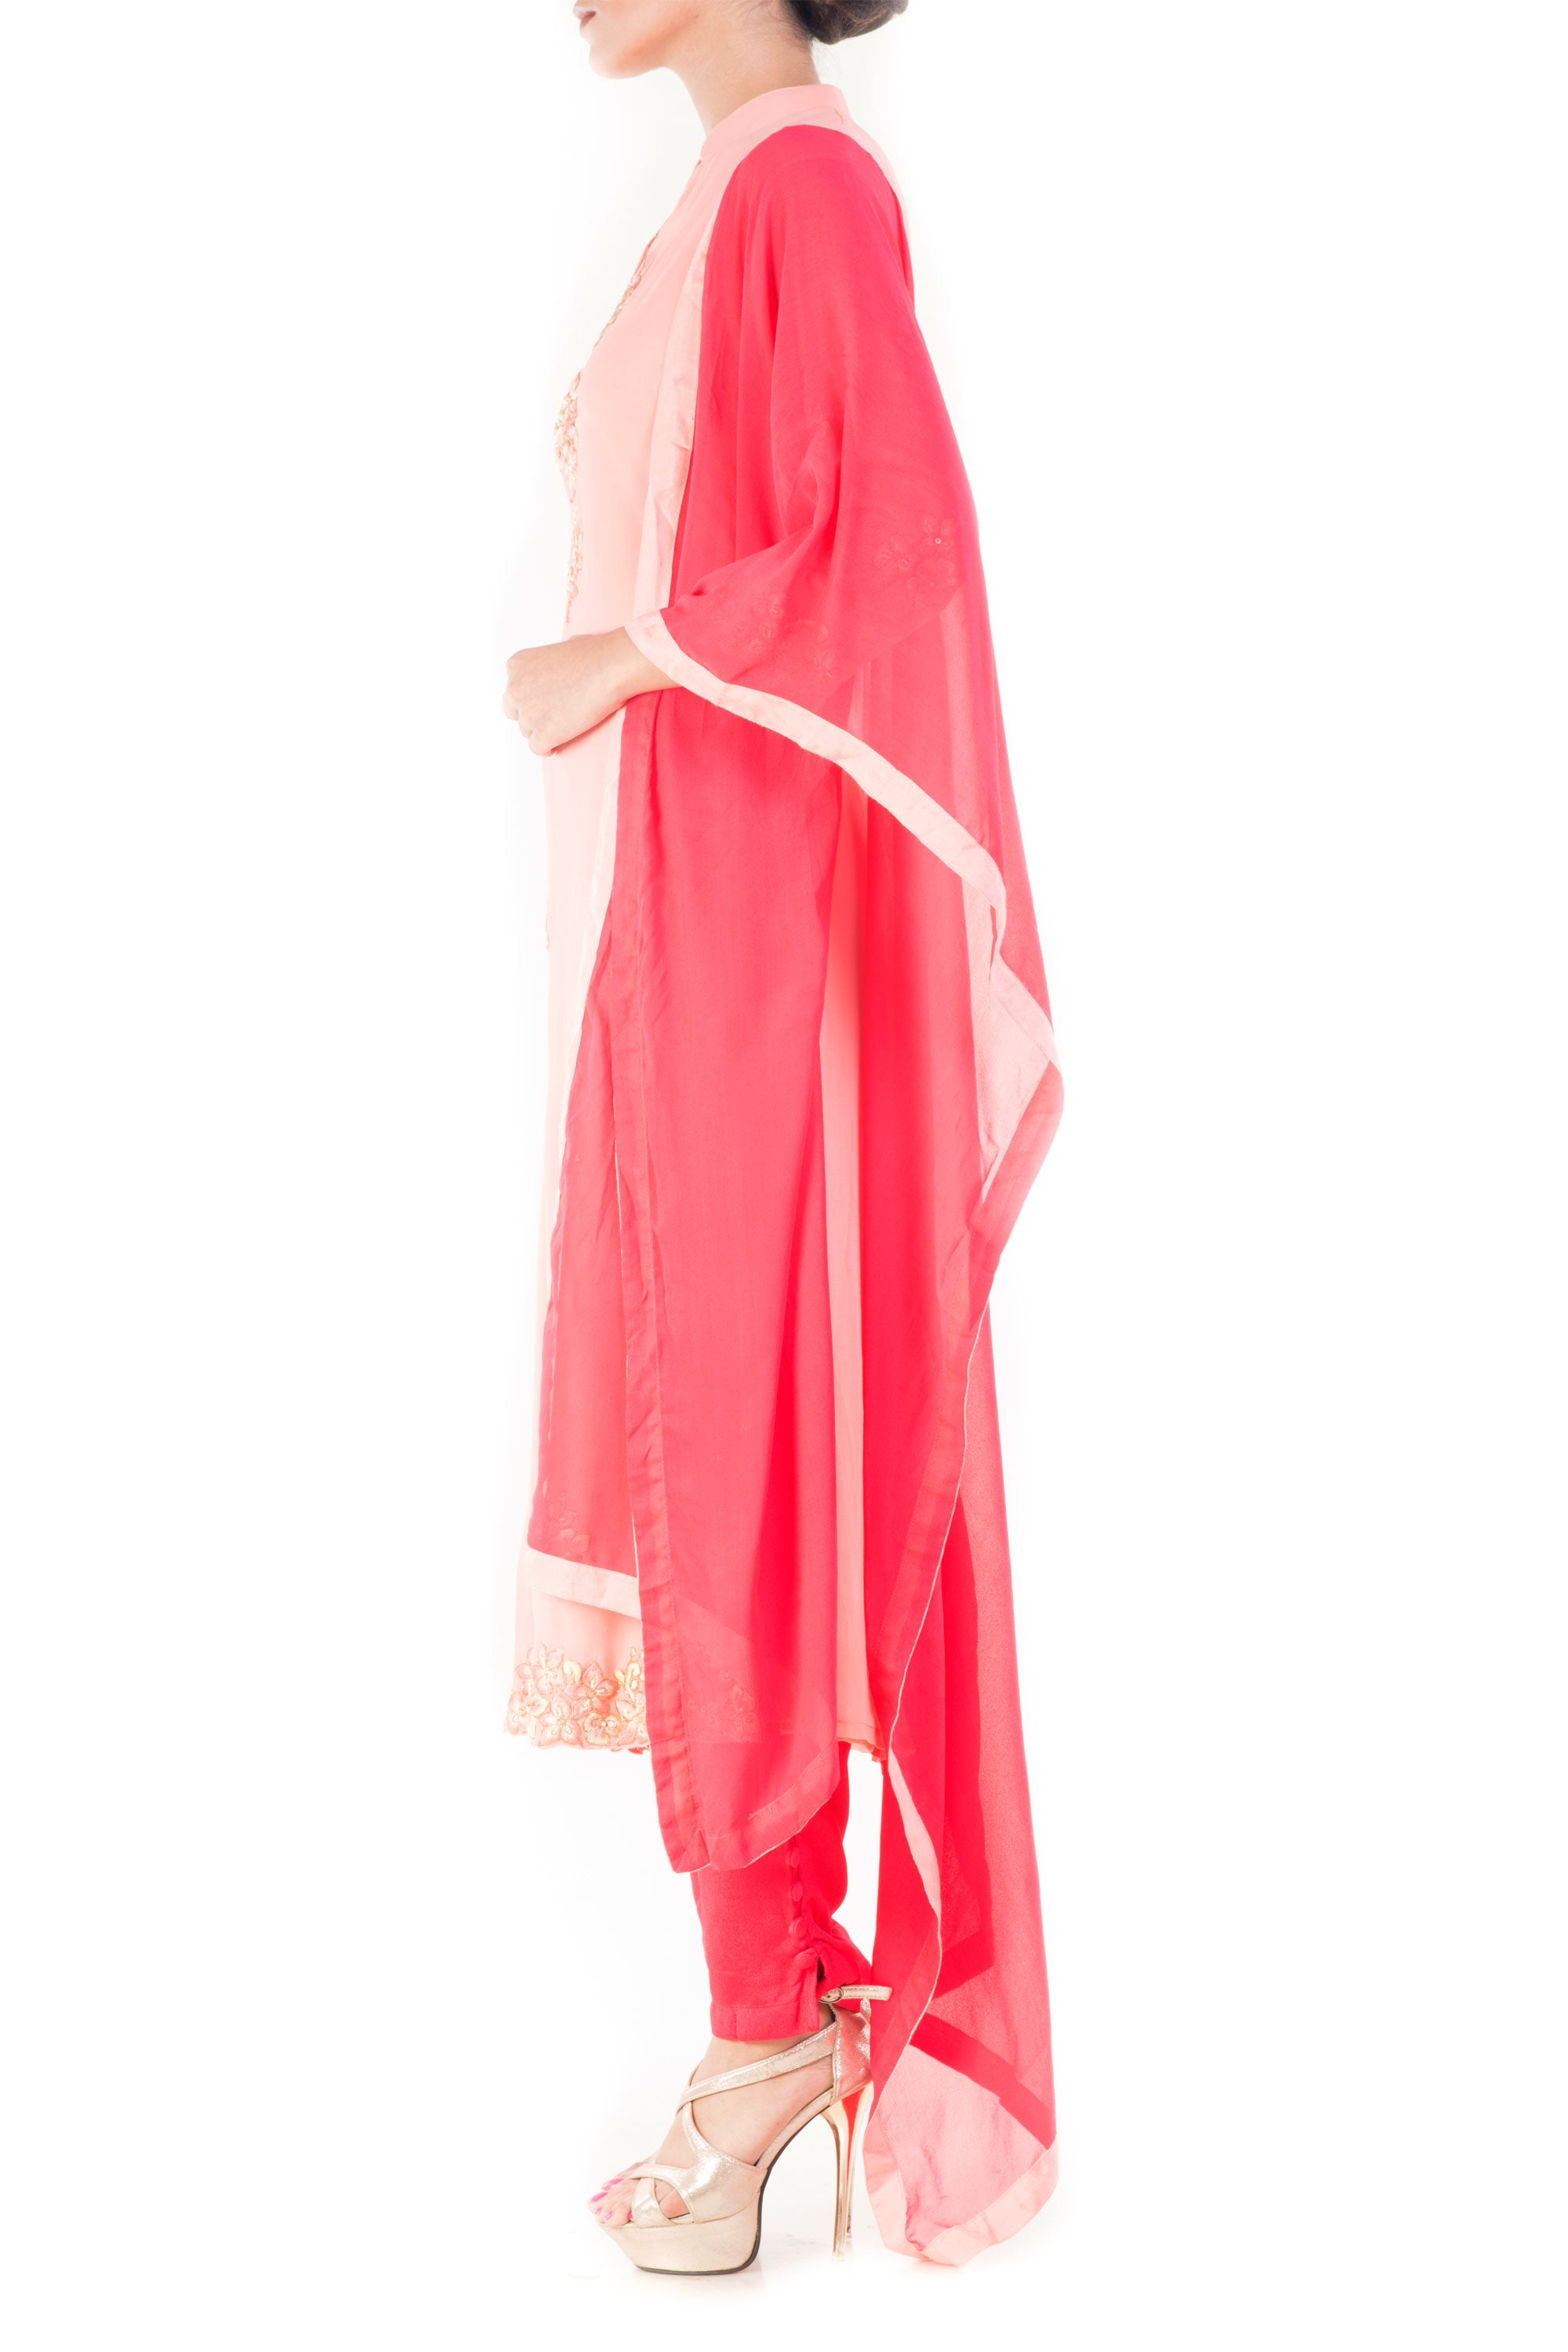 Carnation Pink Salwar Suit Side